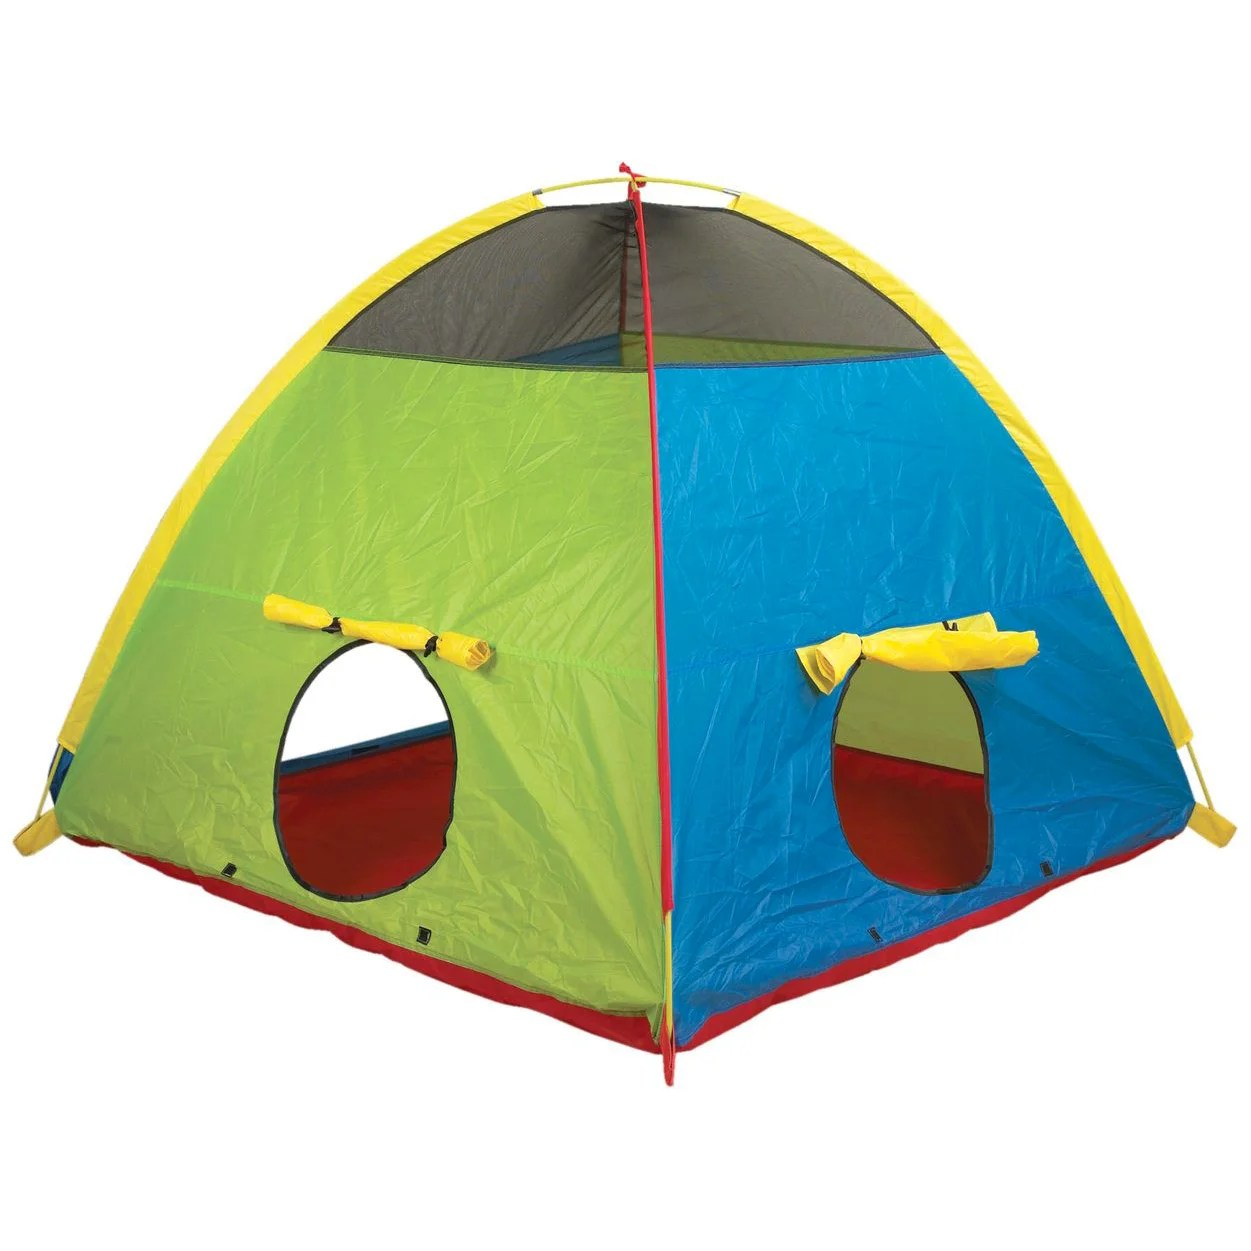 Kids Play Tent Pacific Play Tents Super Duper 4 Kids Tent